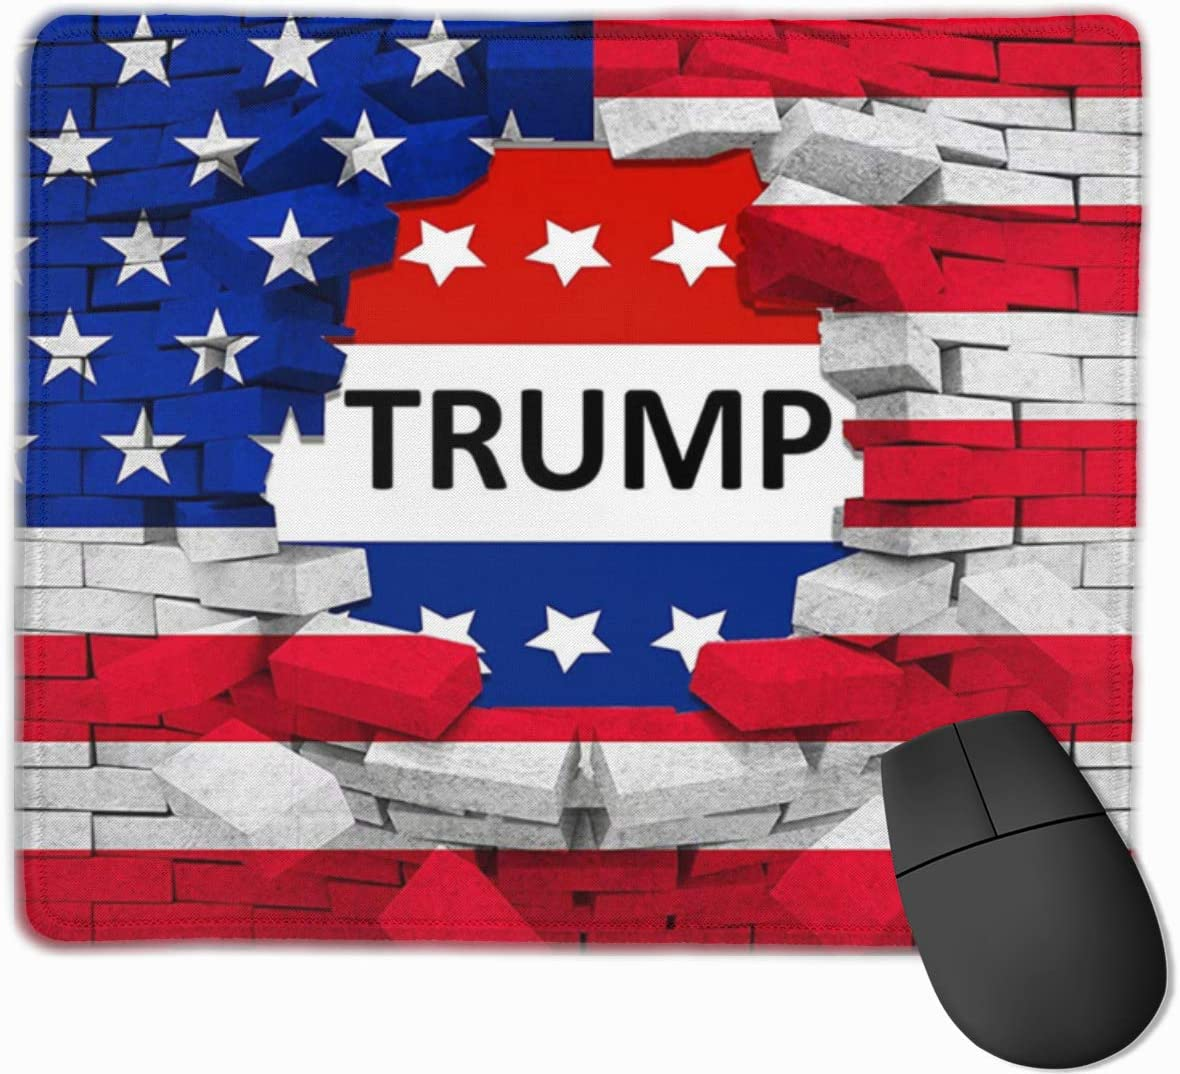 American USA Trump Flag Office Mouse Pad Work Computer Mouse Mat Soft Ultra Thick Premium-Textured with Stitched Edges Non-Slip Rubber Base Waterproof